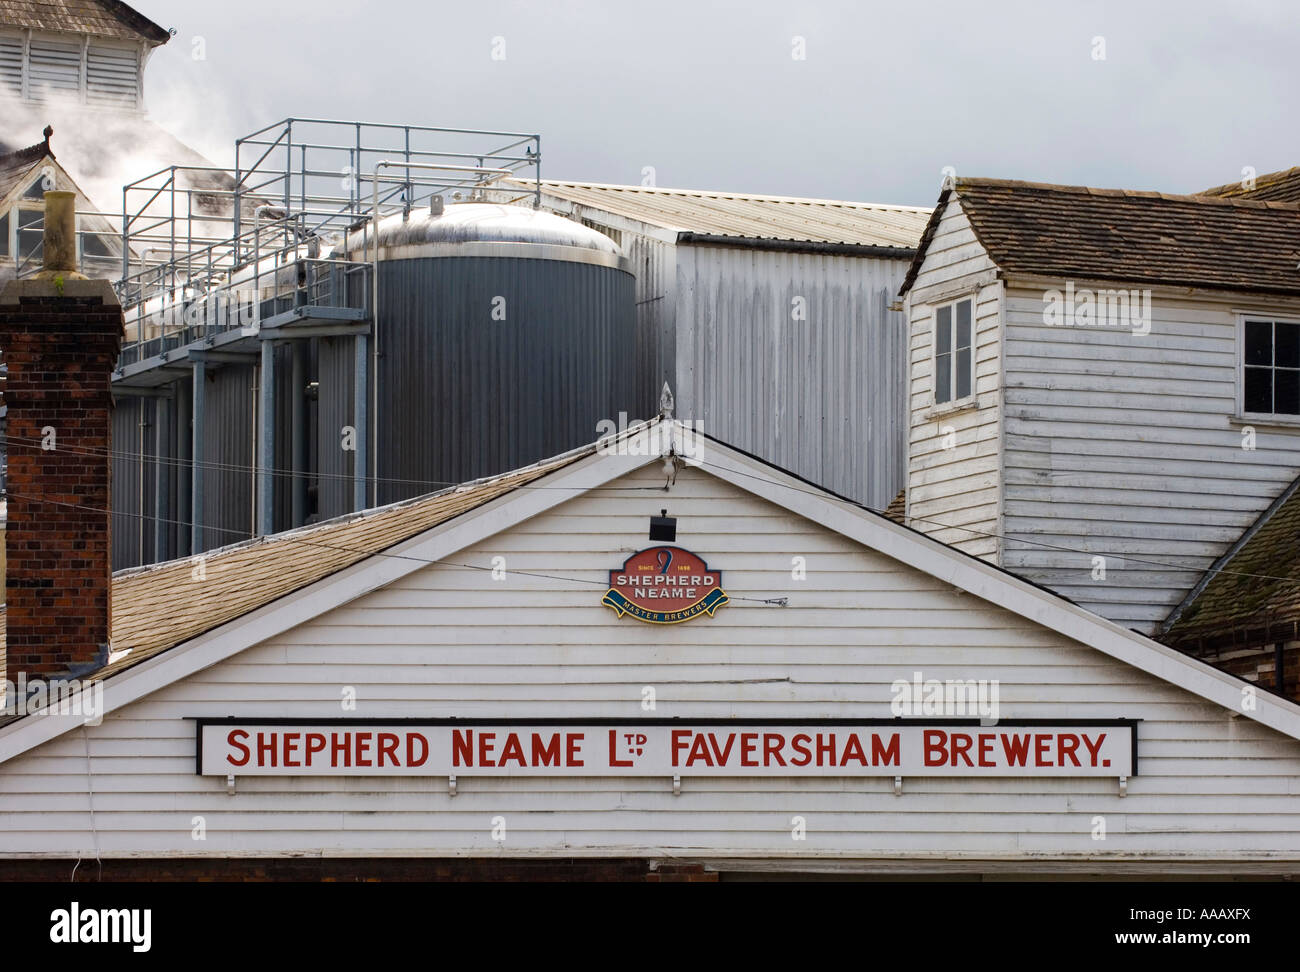 Shepherd Neame Brewery Britain s oldest brewer Faversham Kent - Stock Image